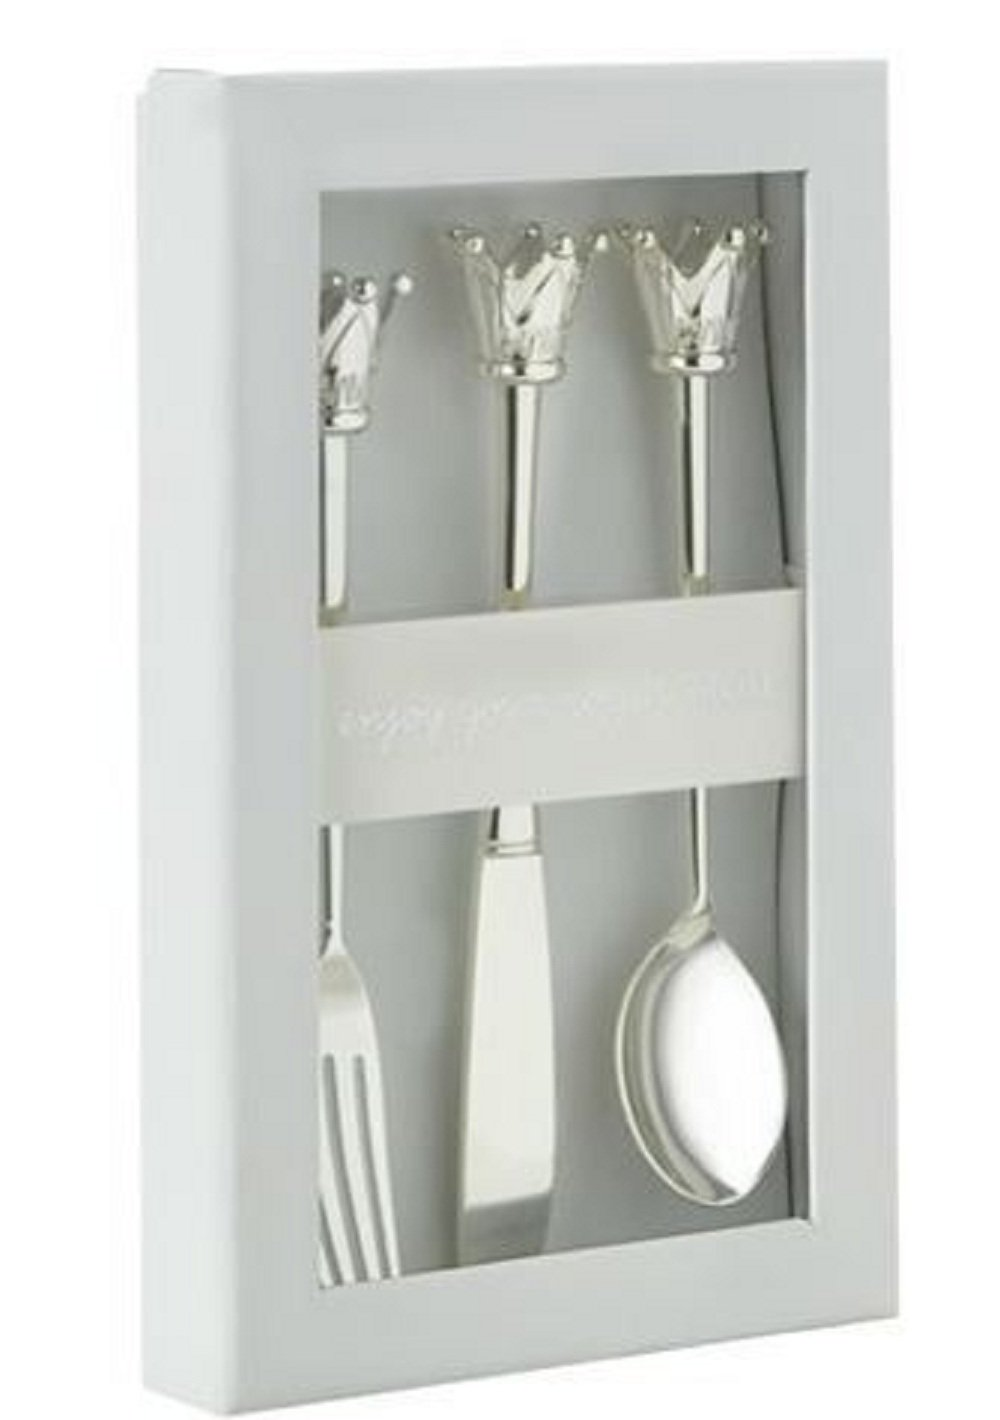 Exclusive New Royal Meal Cutlery Set - Bam Bam